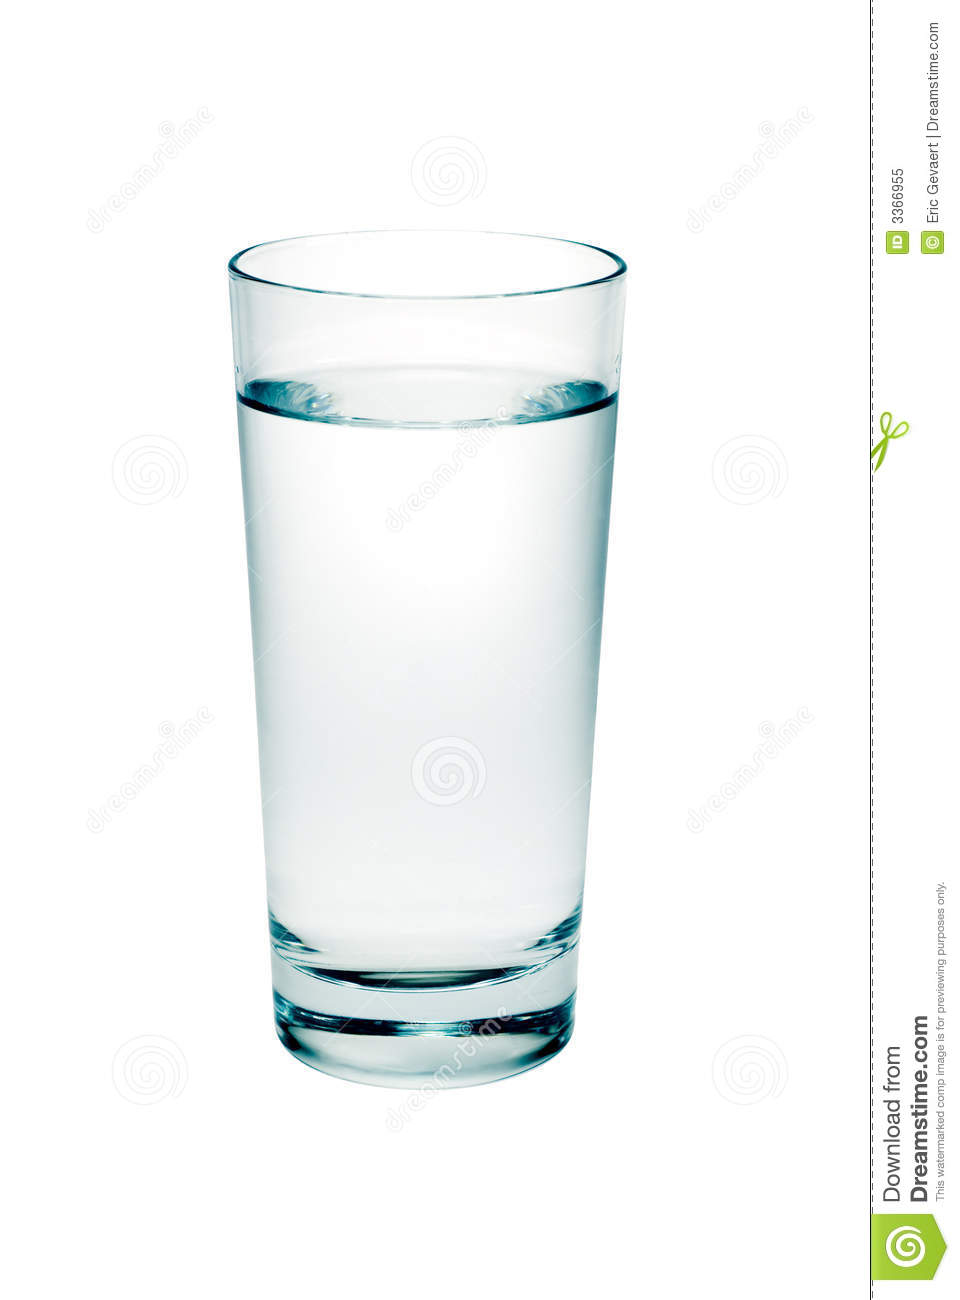 Water Clipart In Glass.